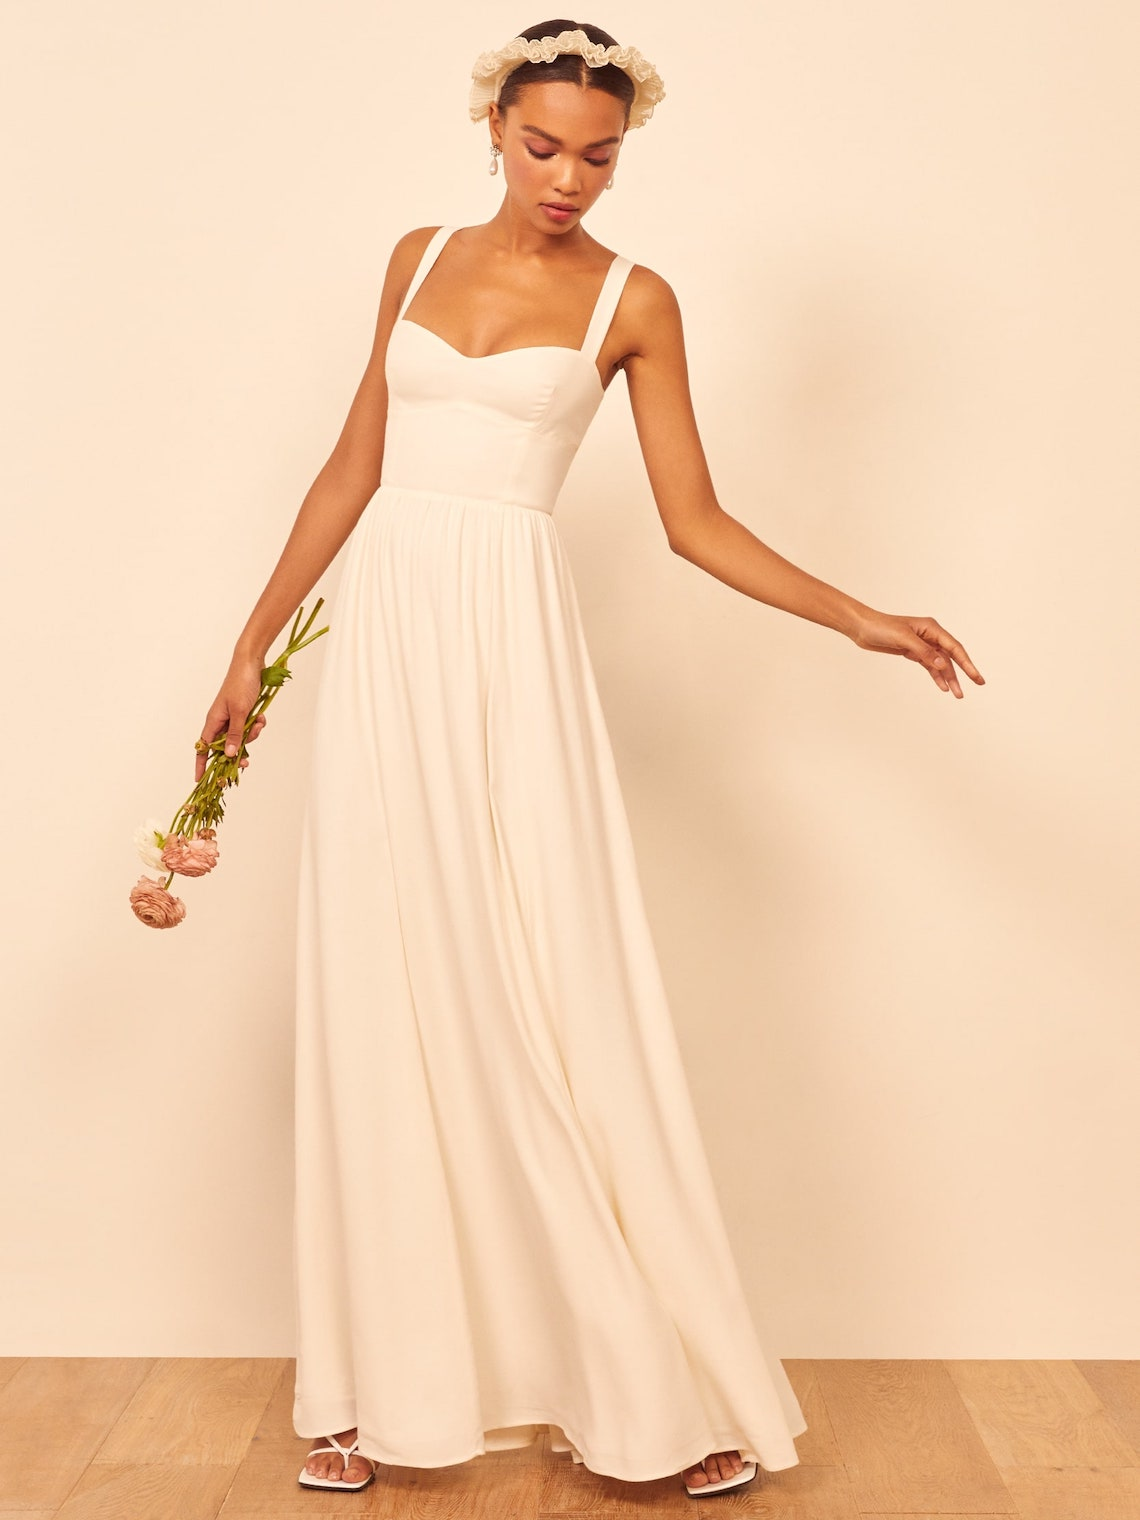 20 Affordable Back Up Wedding Dresses Under 500 Ready To Ship,Dress Wedding Guest Fashion And Style